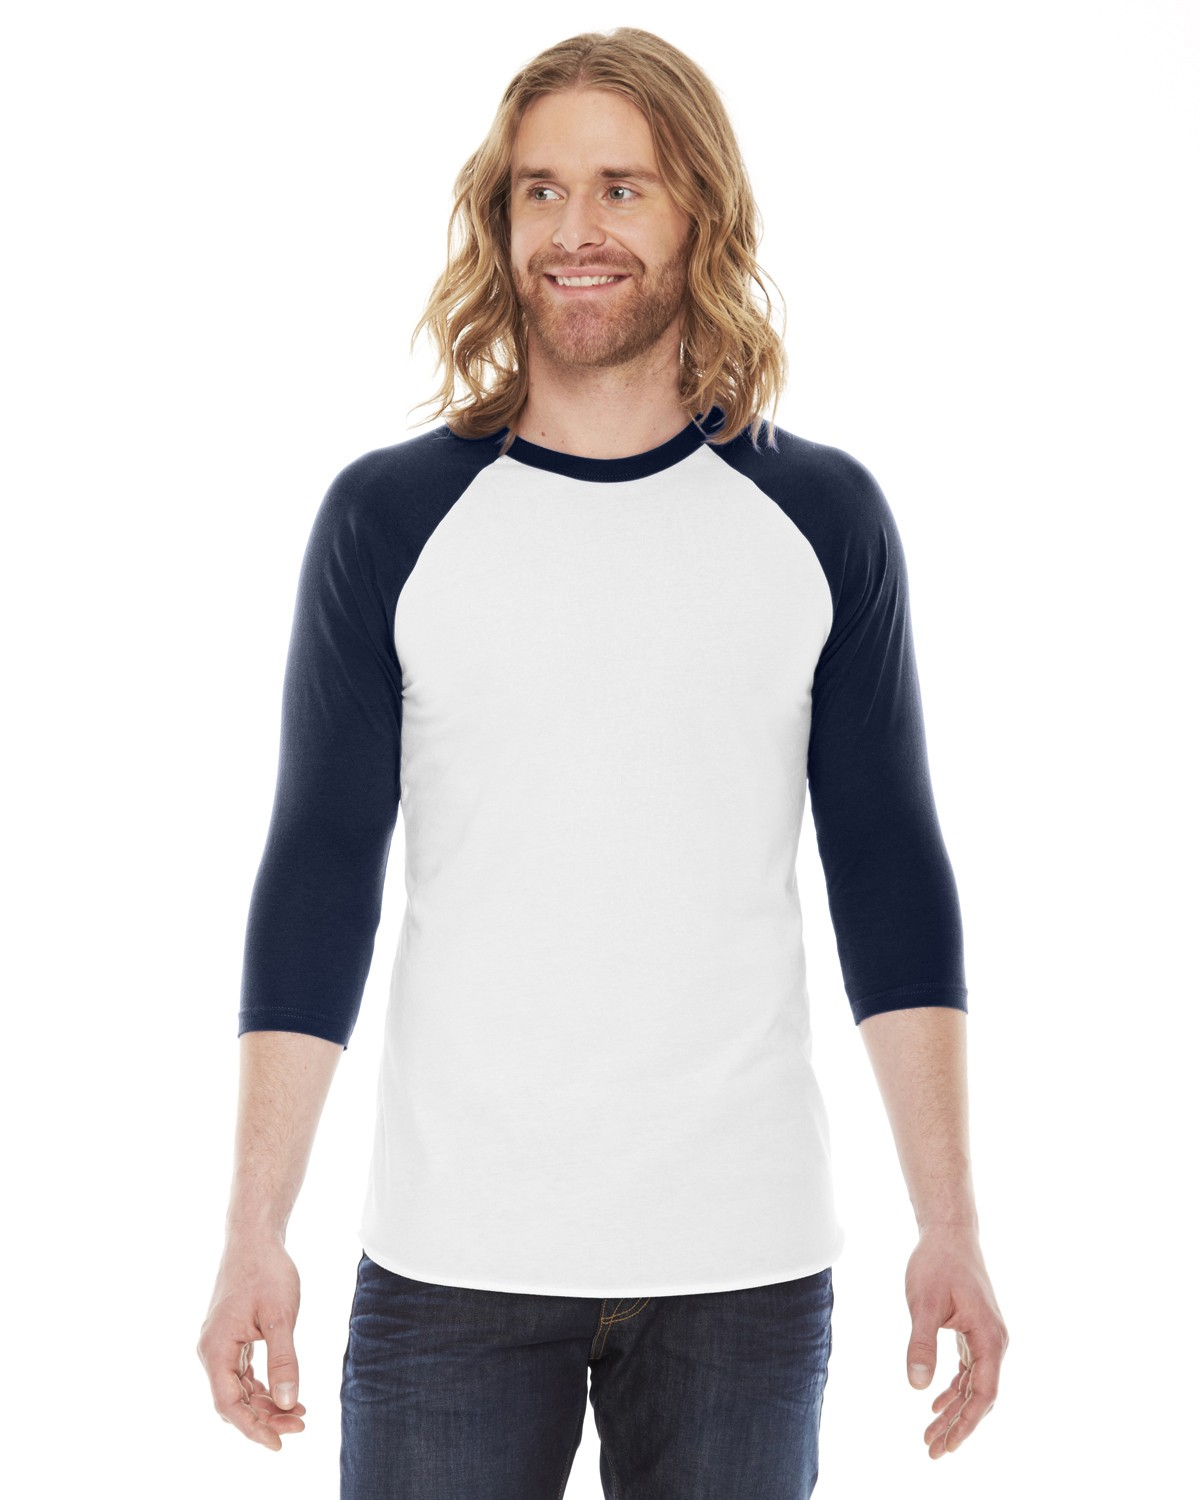 BB453 American Apparel WHITE/NAVY